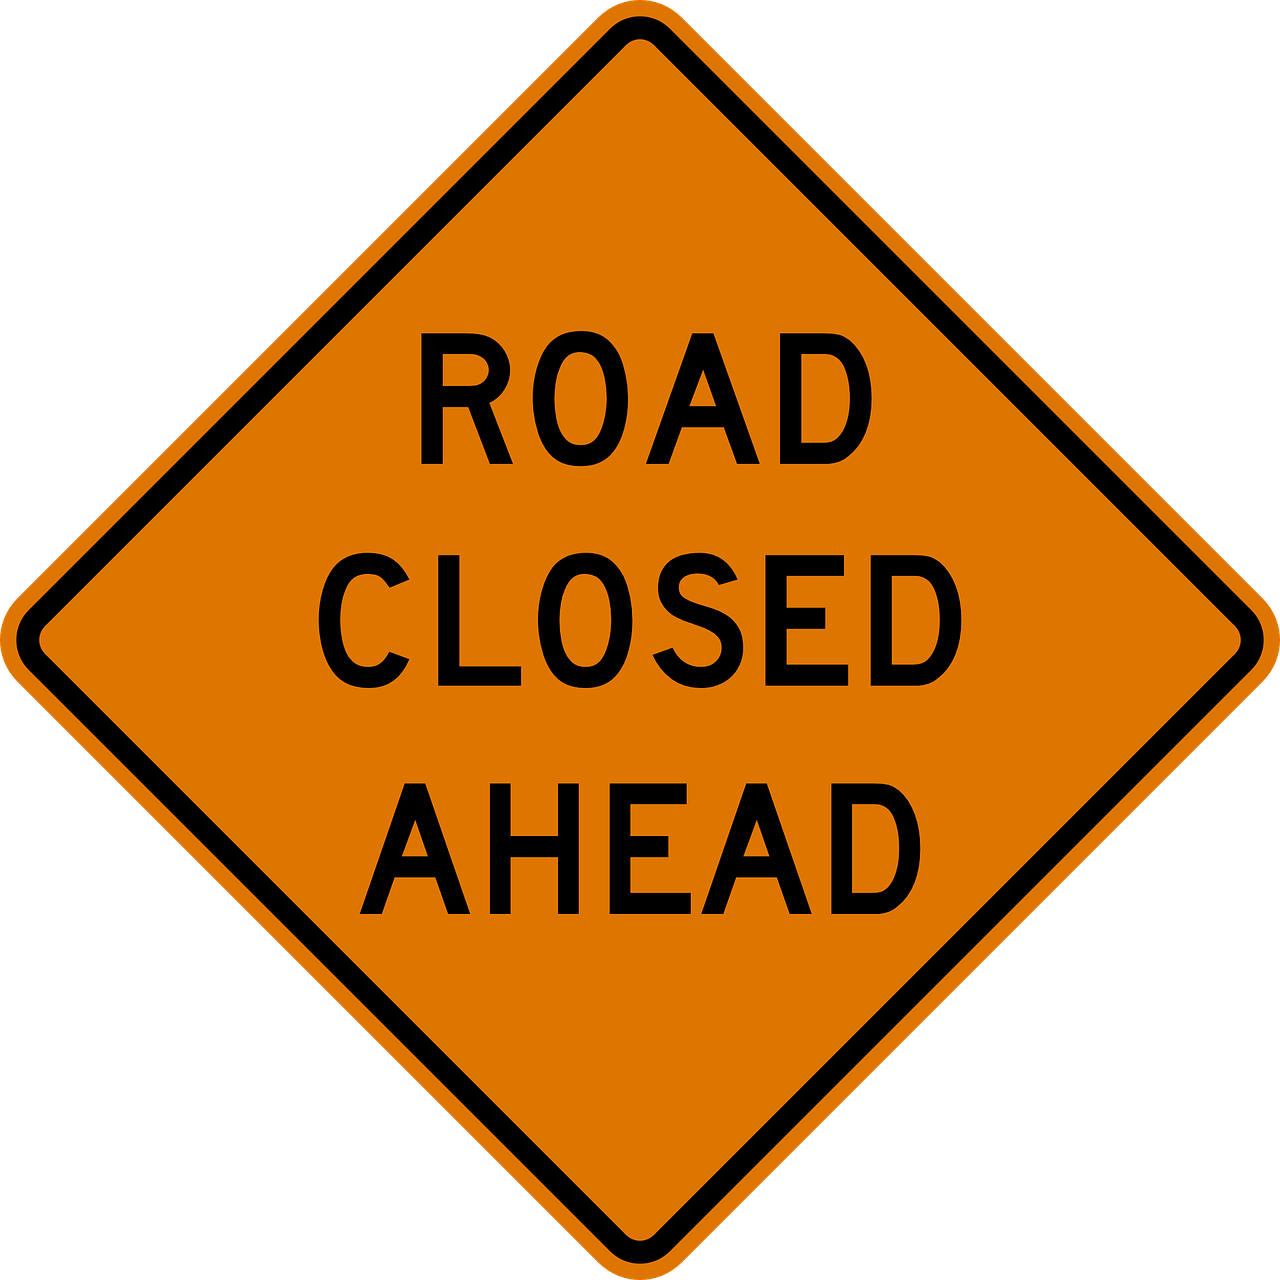 Portions of Mills Civic & So. 88th to close on Monday, March 16